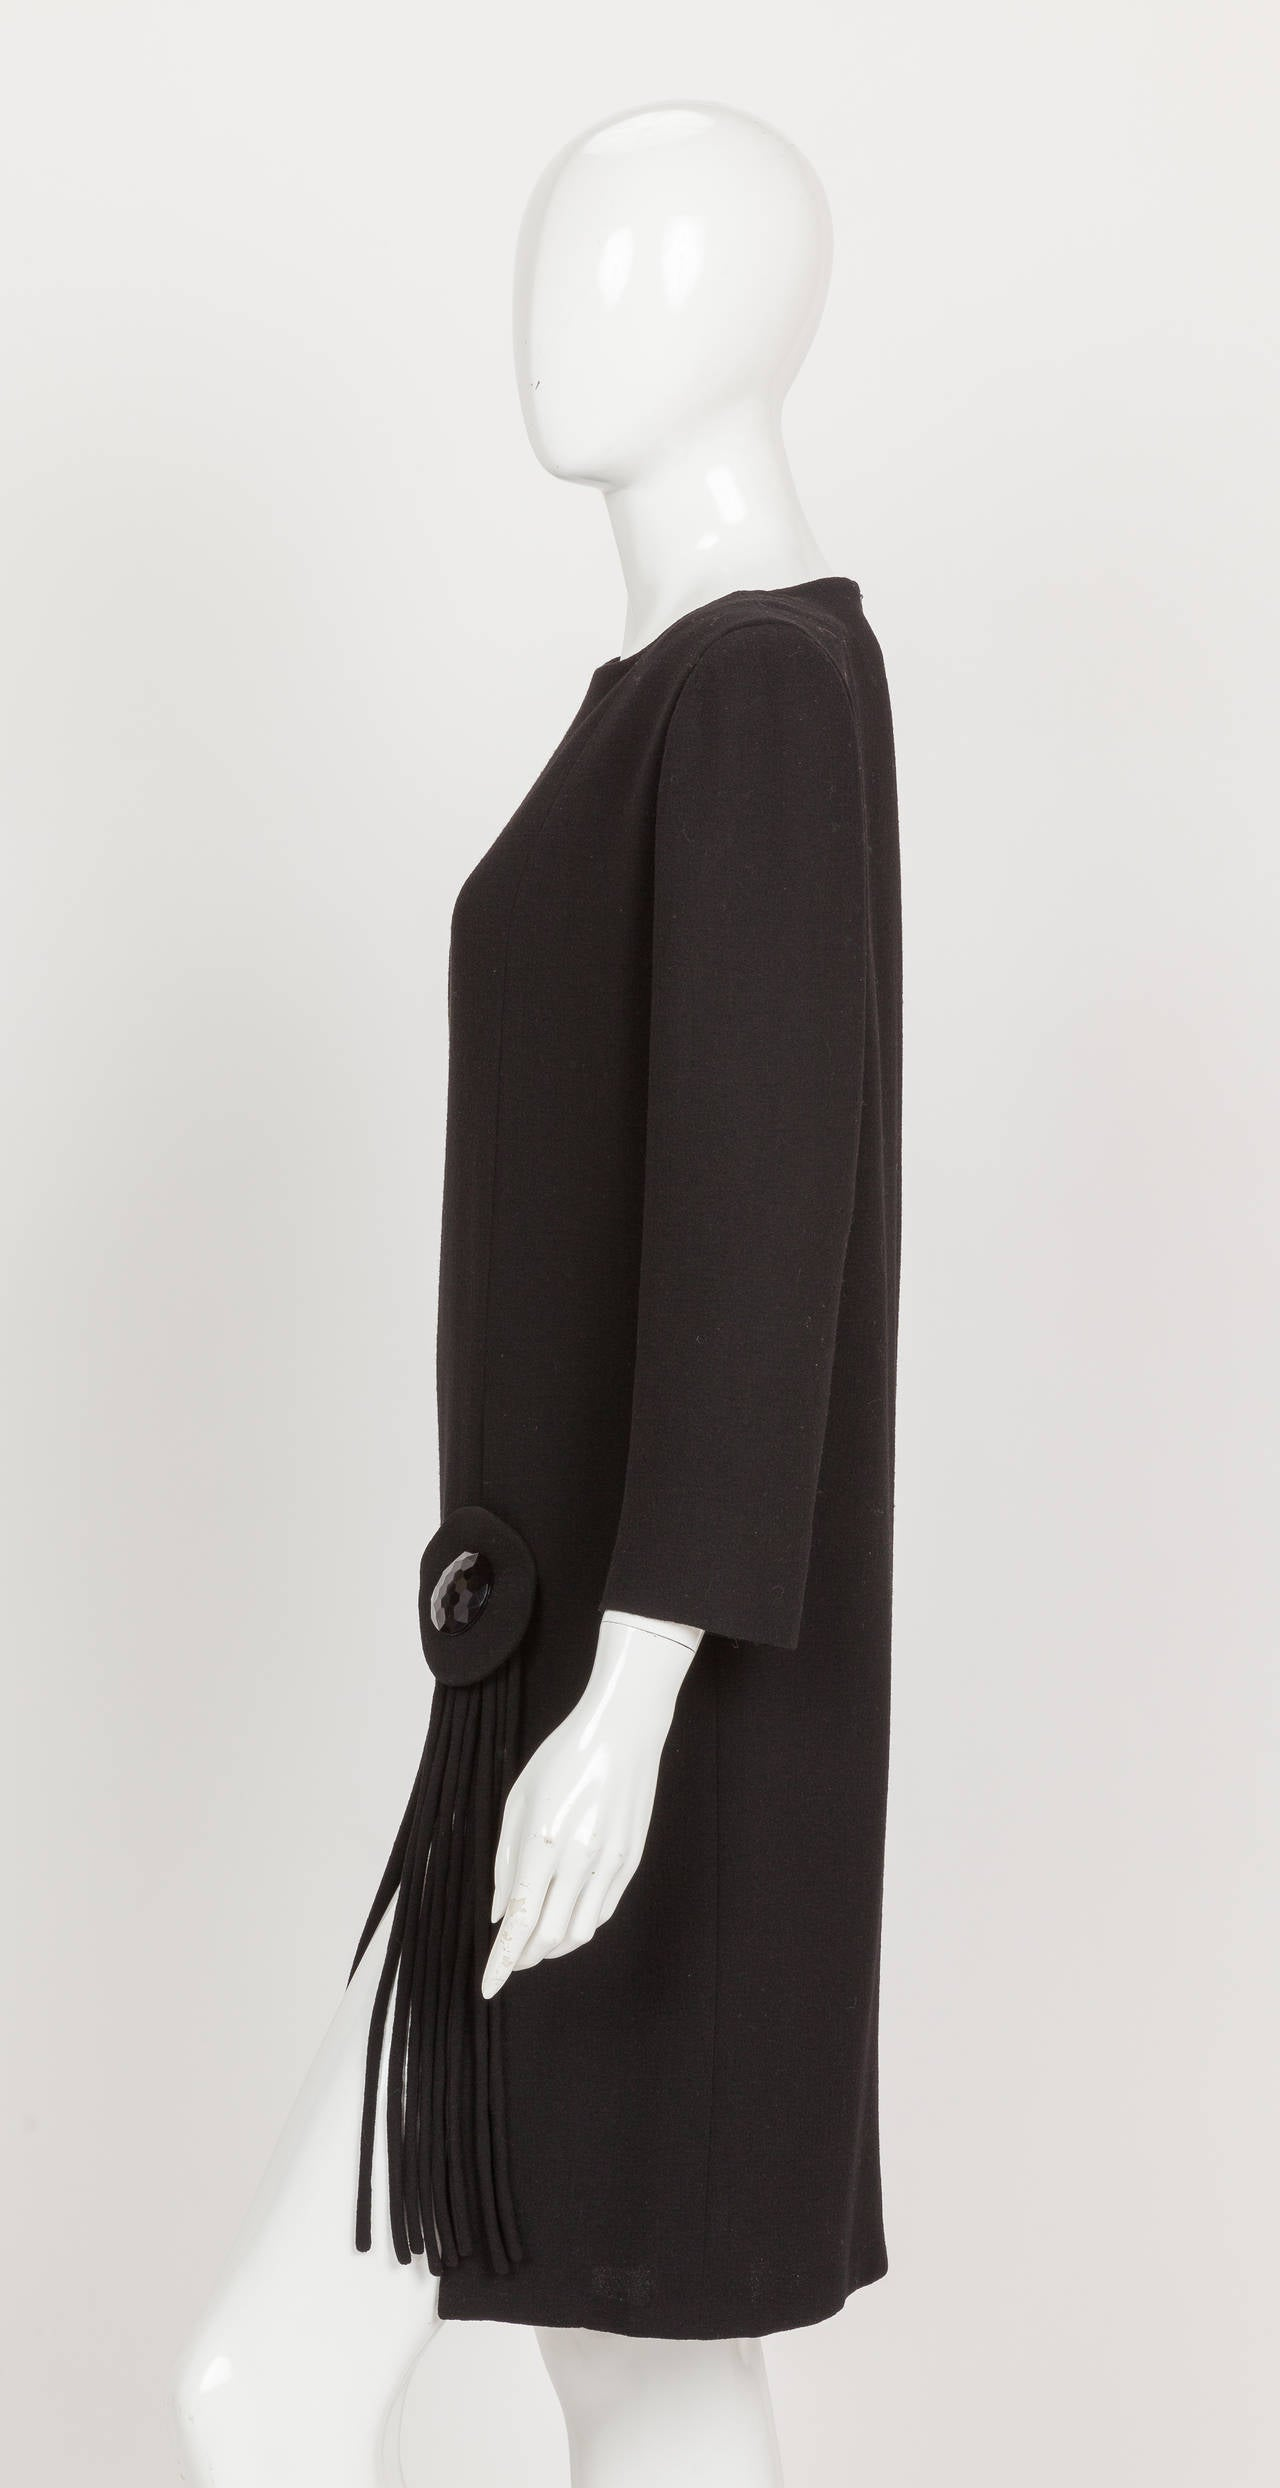 Pierre Cardin Haute Couture Black Wool Cocktail Dress w/Thigh High Slit ca. 1992 5